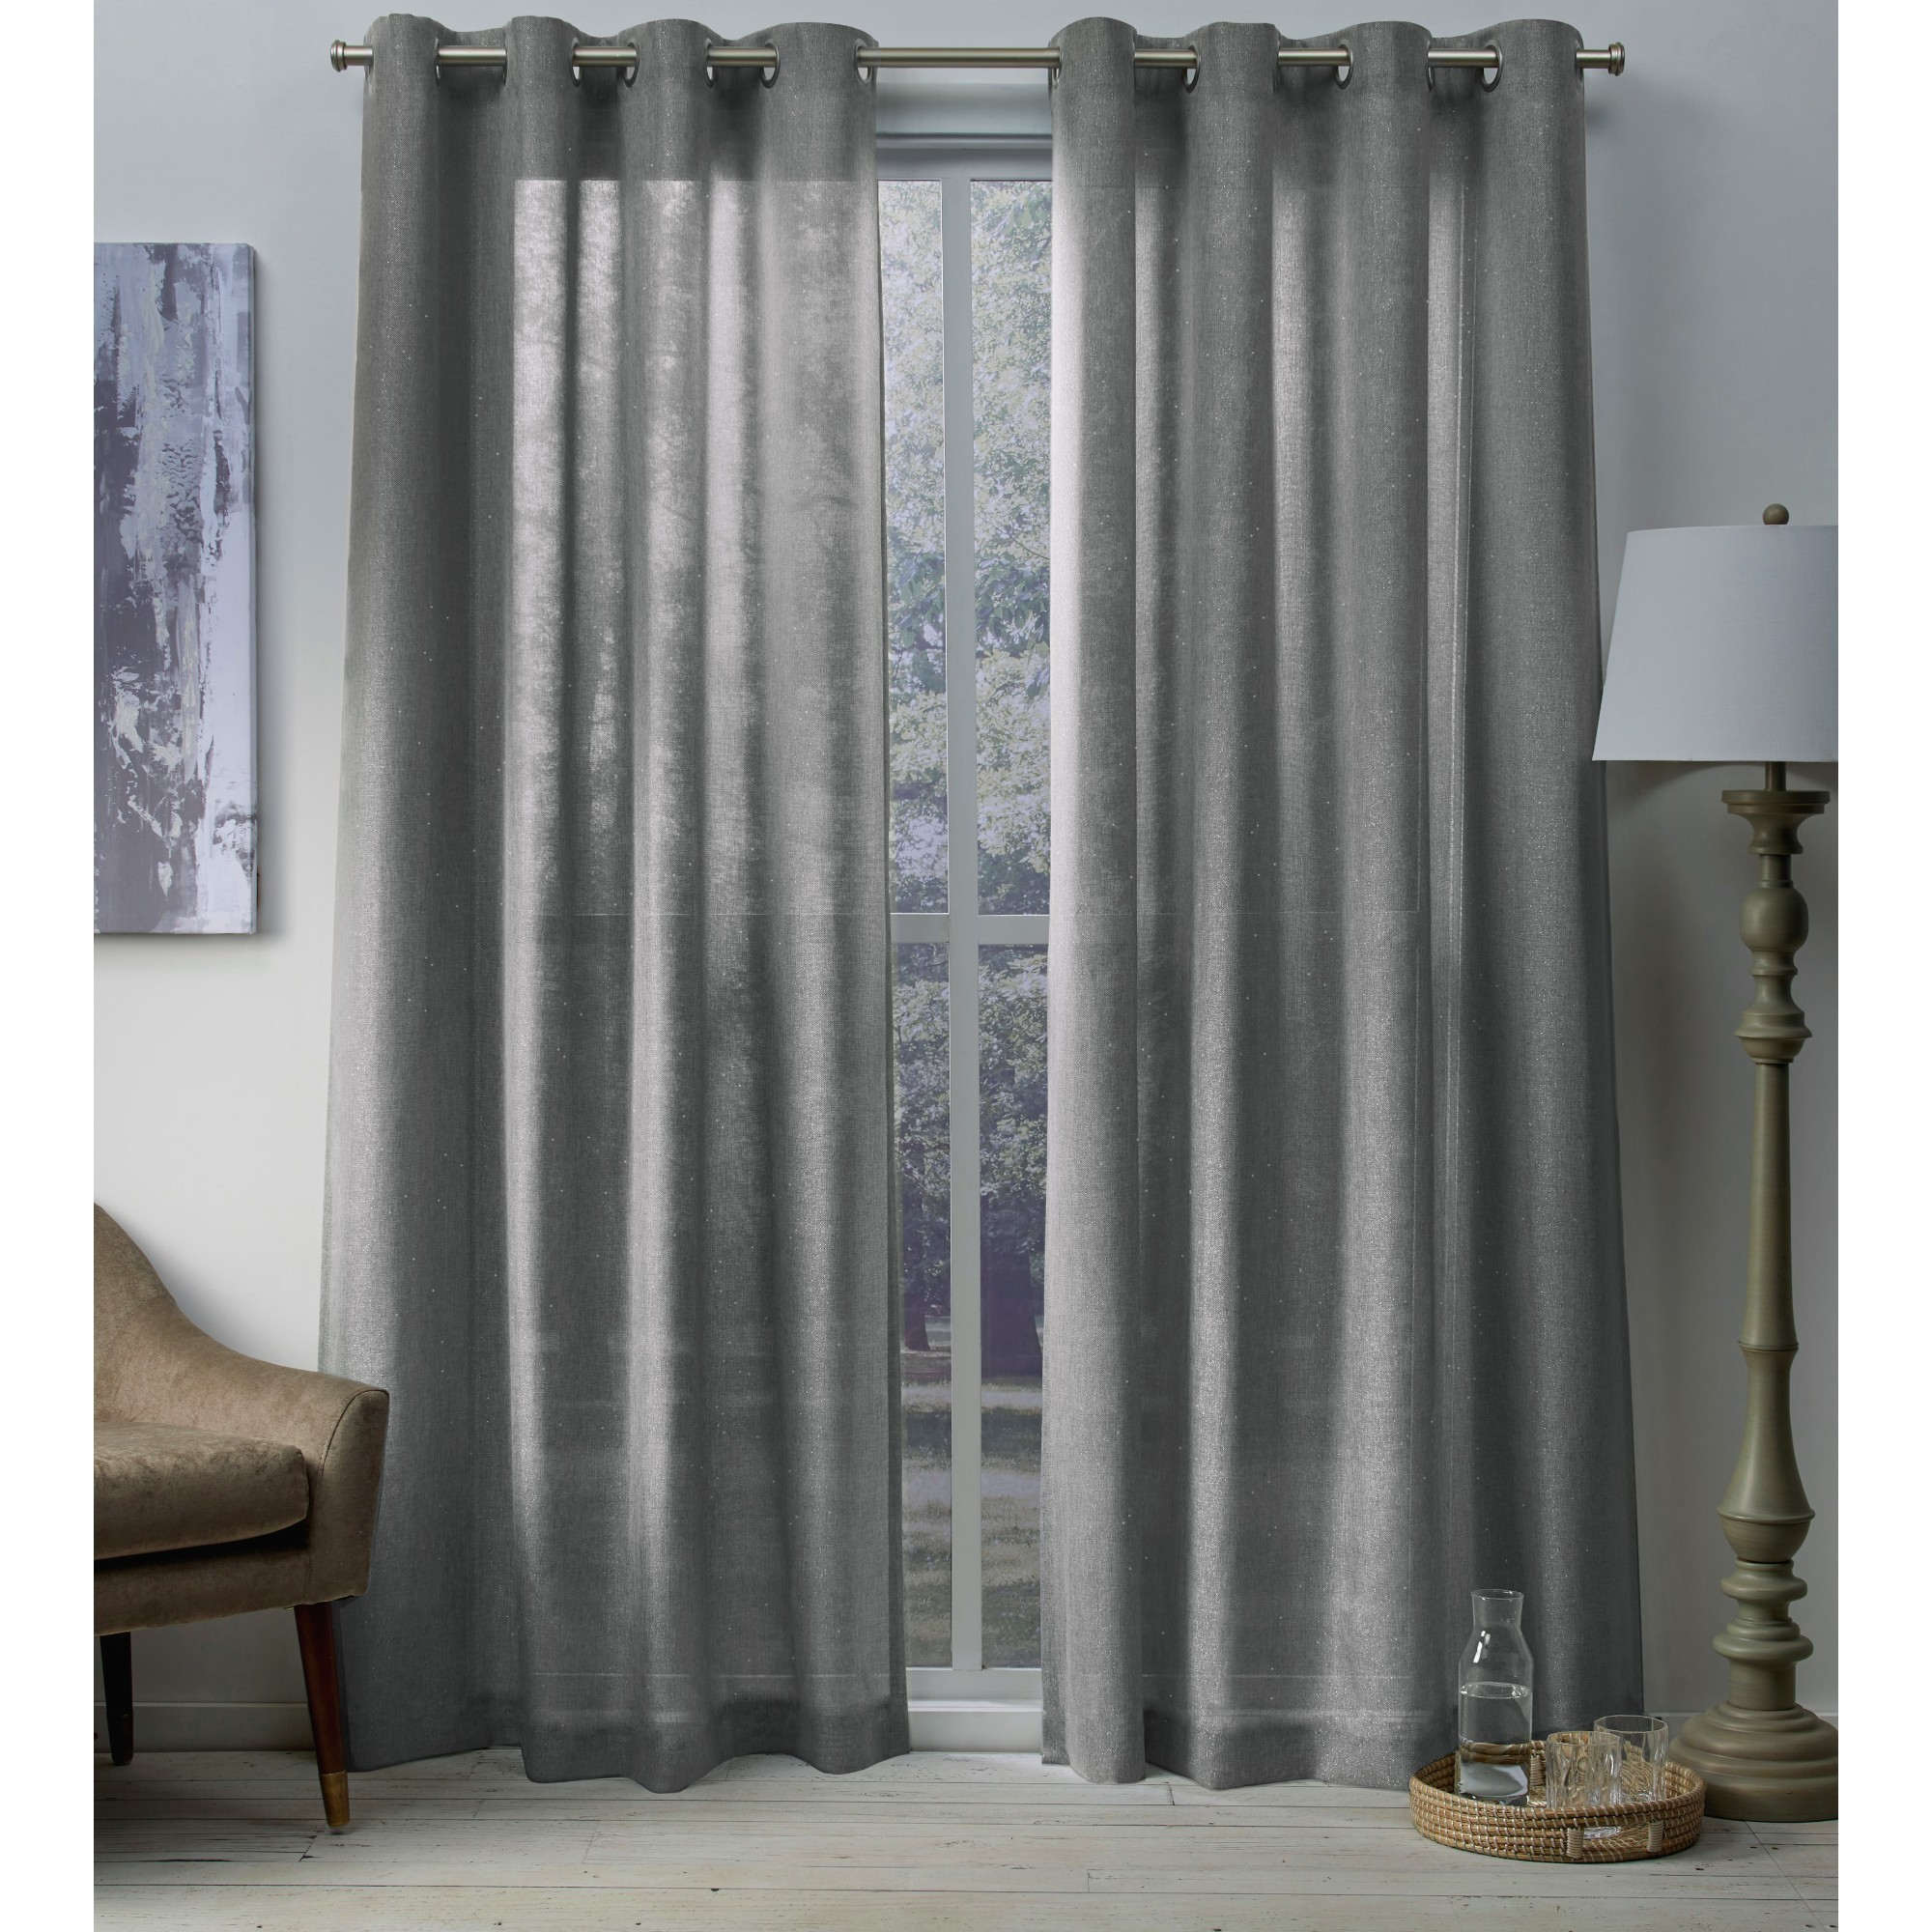 Exclusive Home Curtains 2 Pack Sparkles Heavyweight Metallic Fleck Textured Linen Grommet Top Curtain Panels